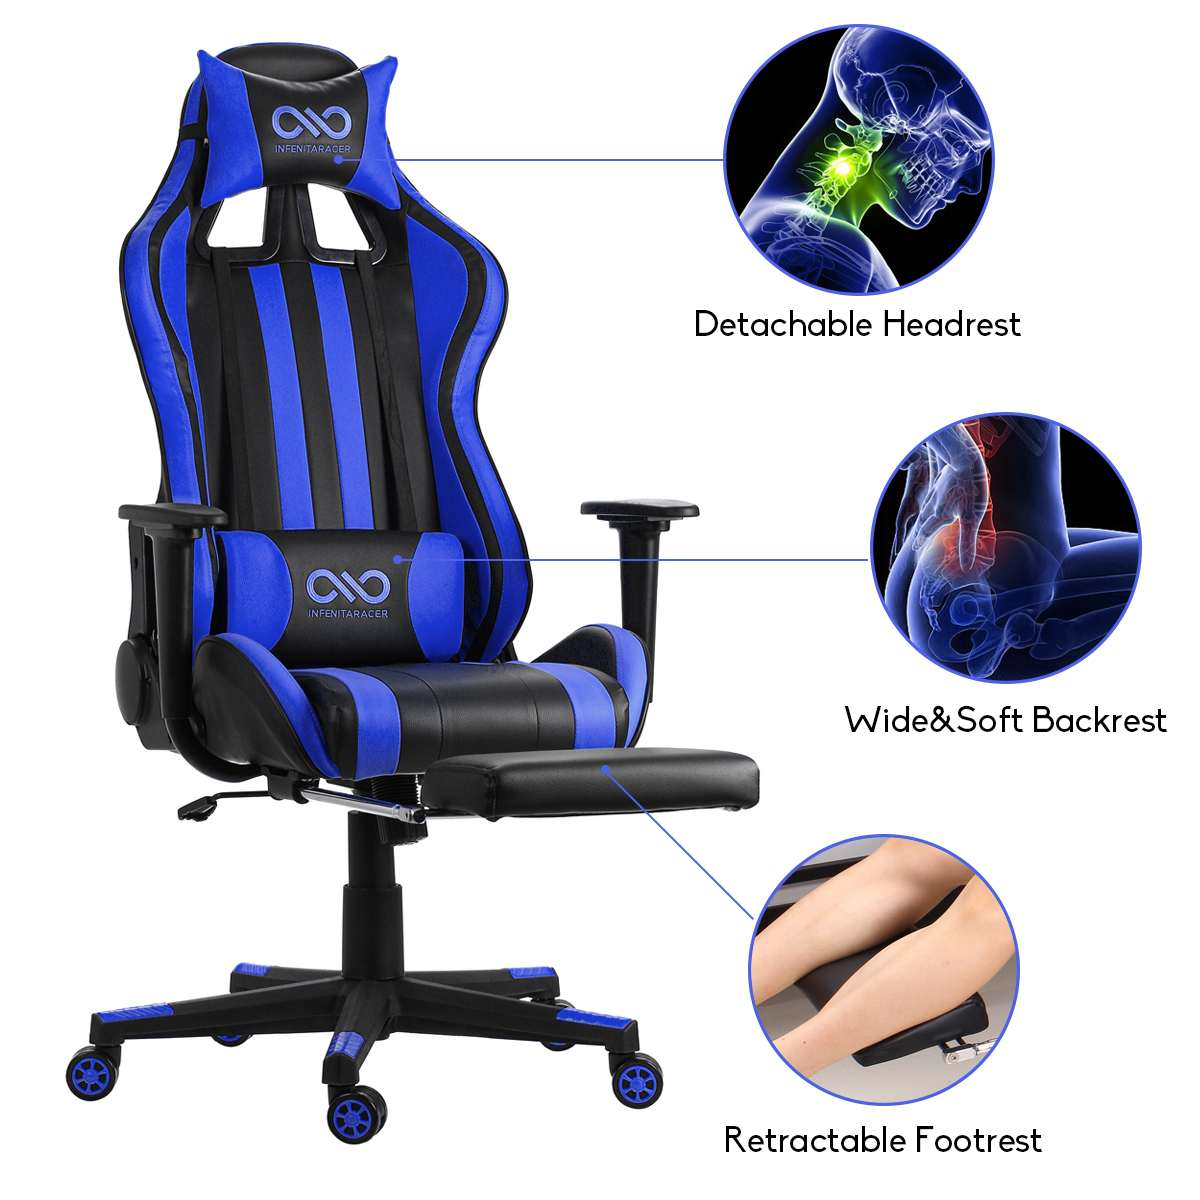 H900071444ed644c3a3e1308082c62912H - Office Gaming Chair PVC Household Armchair Lift and Swivel Function Ergonomic Office Computer Chair Wcg Gamer Chairs